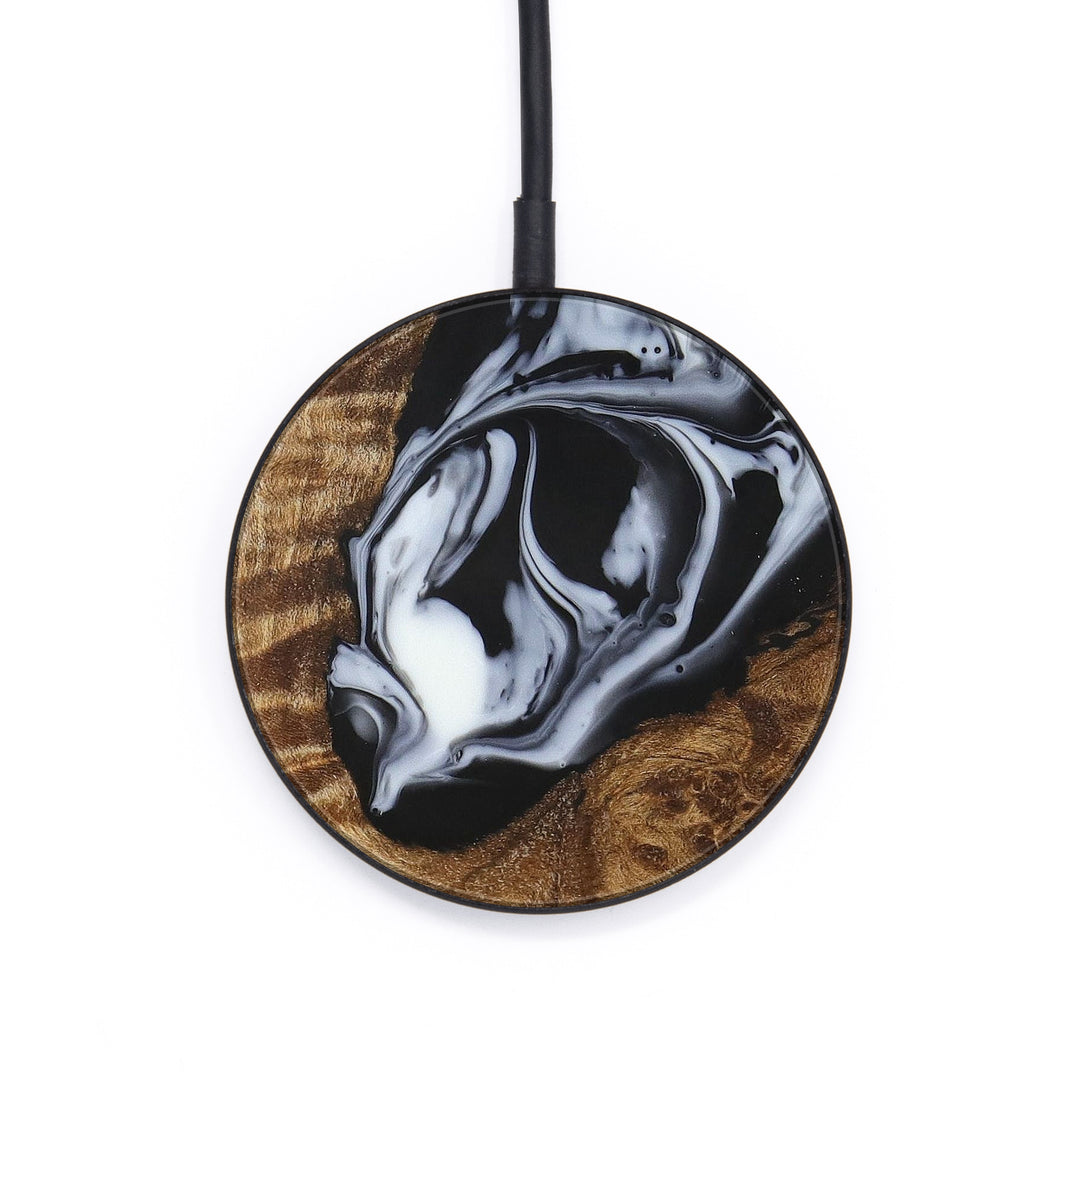 Circle Wood+Resin Wireless Charger - Kasifa (Black & White, 388896)